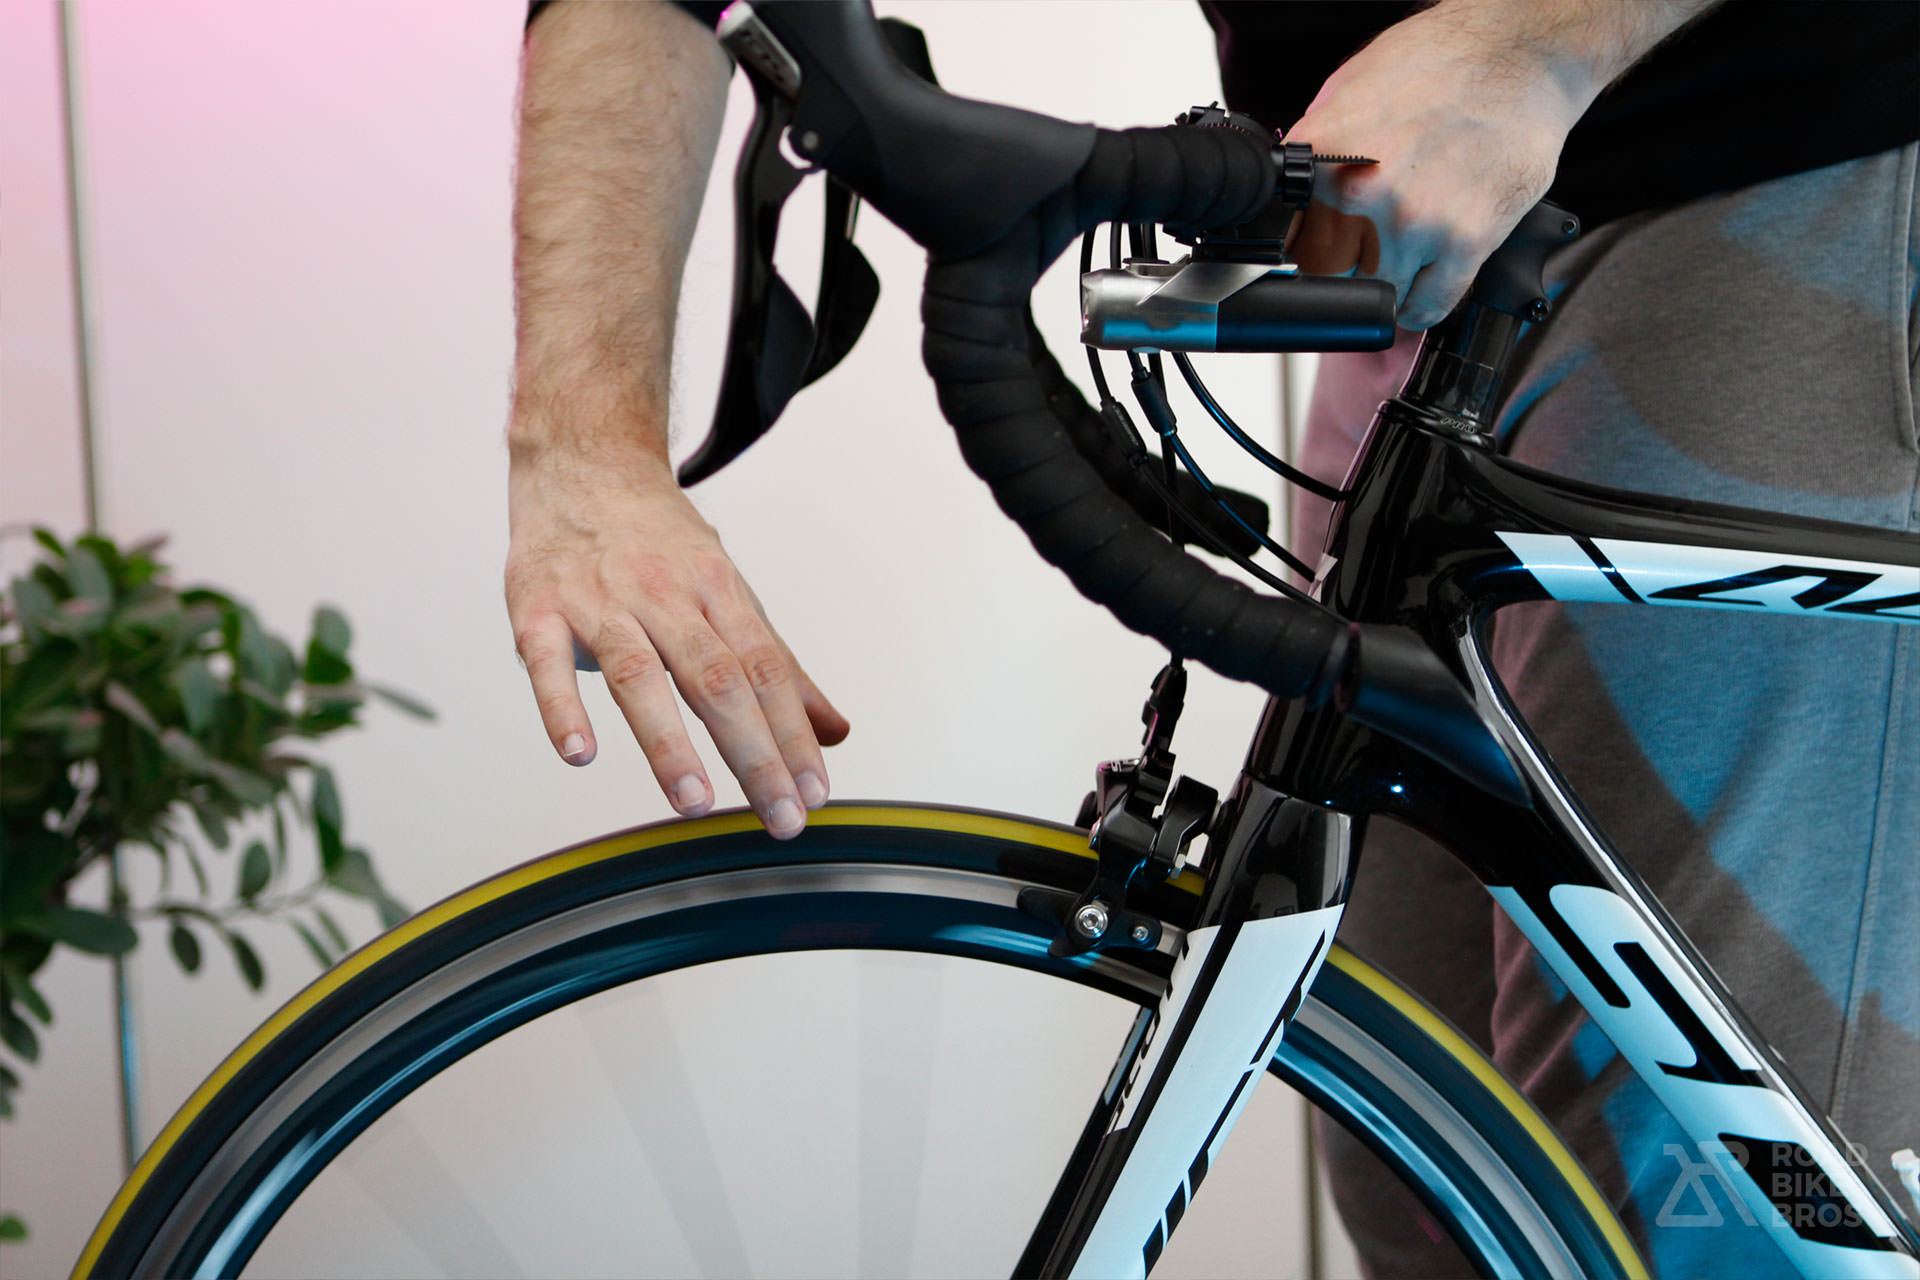 60 Seconds Check Before Every Ride Cycling Bicycle Roadbike Check Brakes